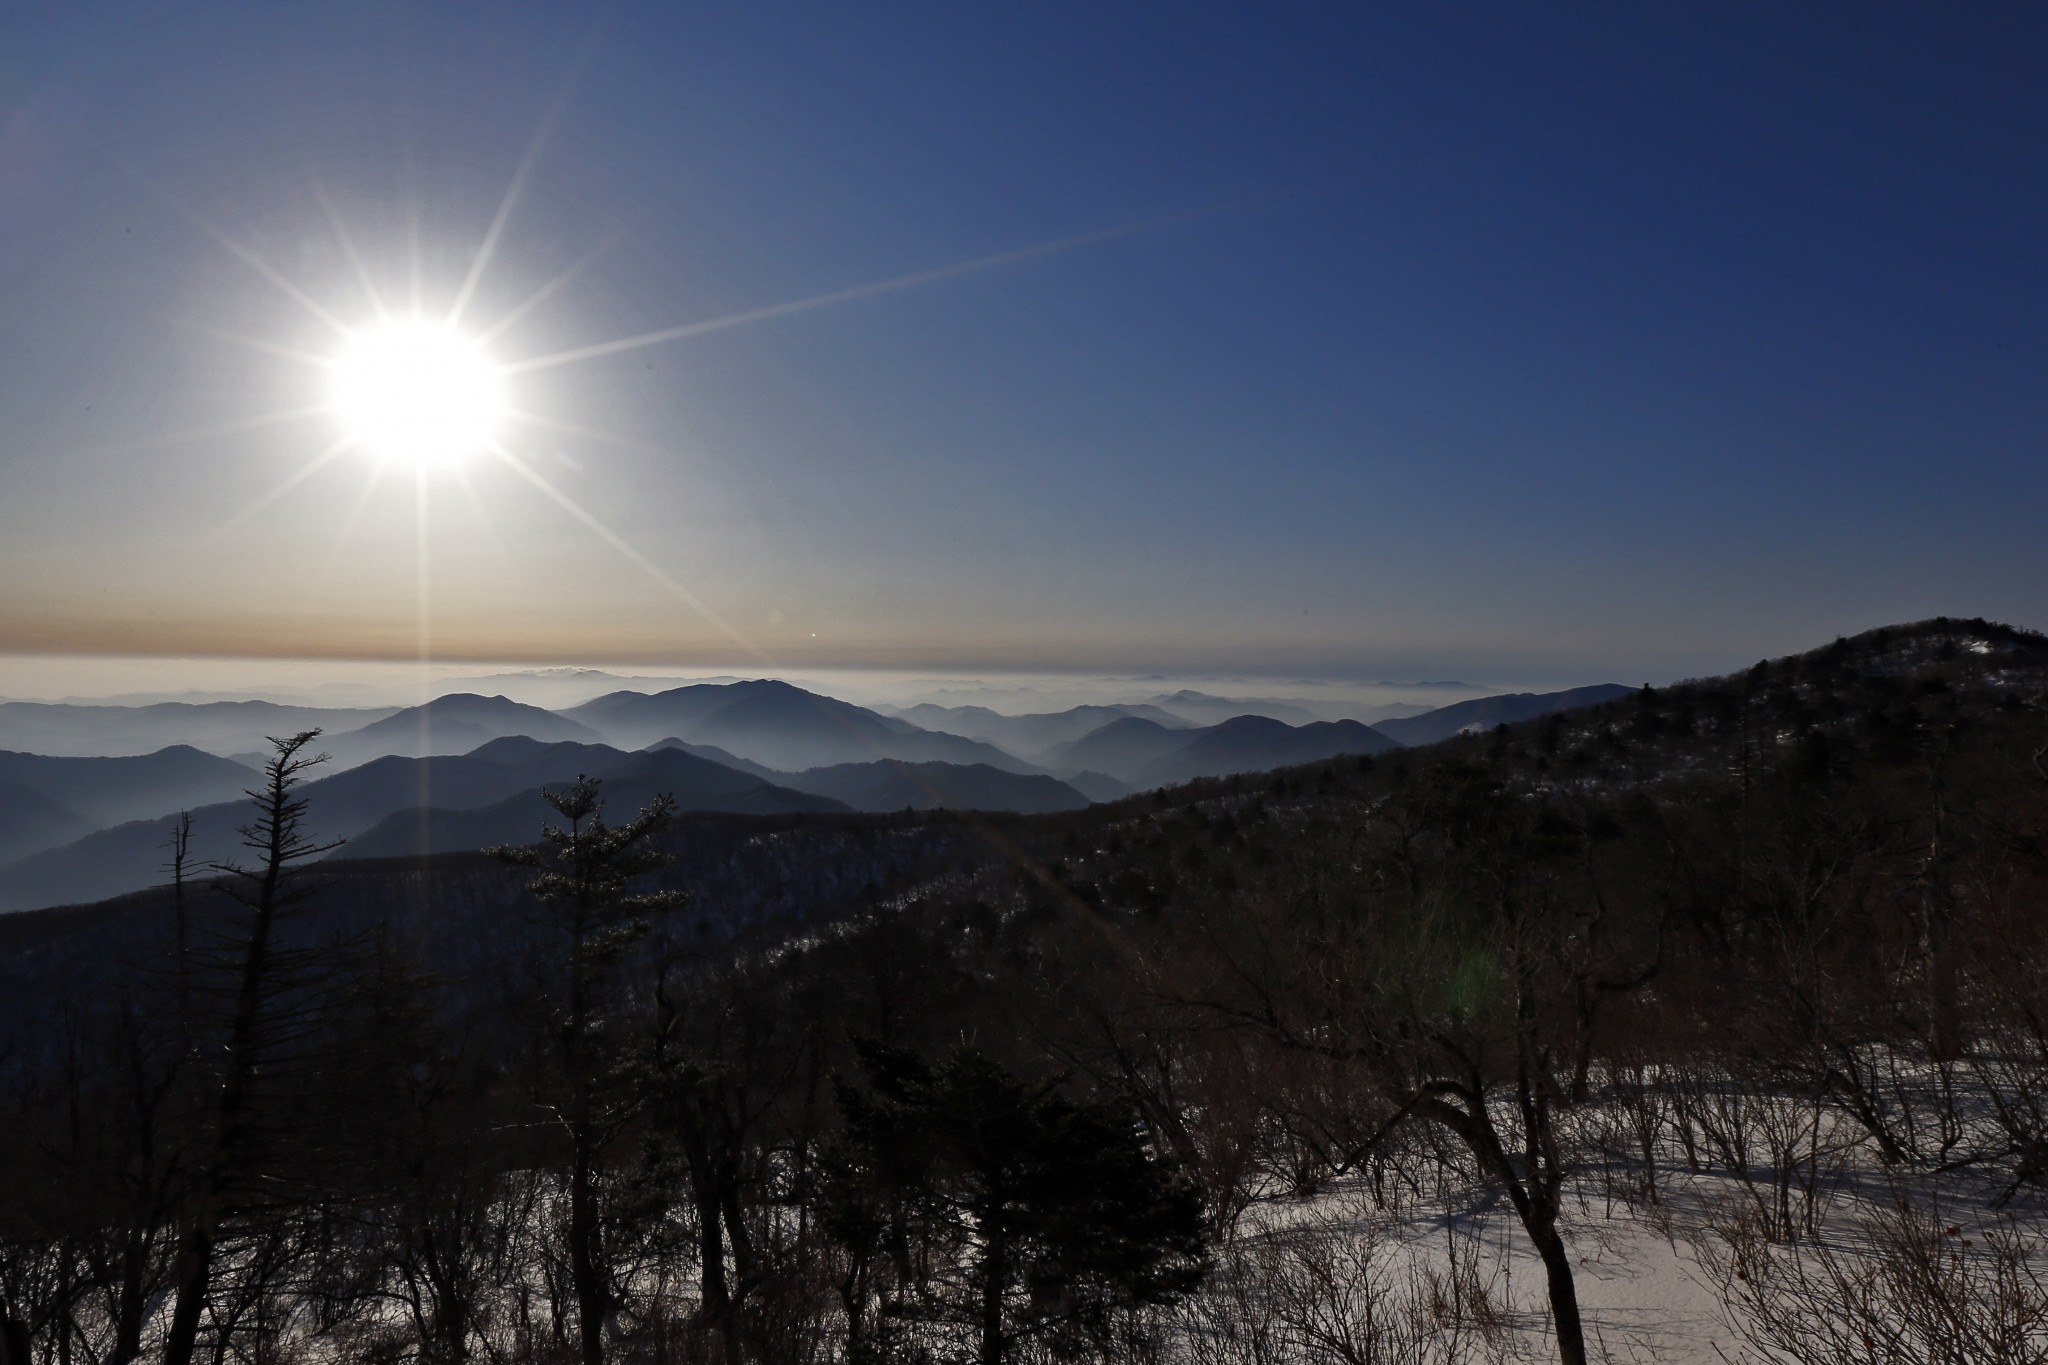 Gangwon Province considering bid to co-host 2021 Asian Winter Games with North Korea, according to Governor